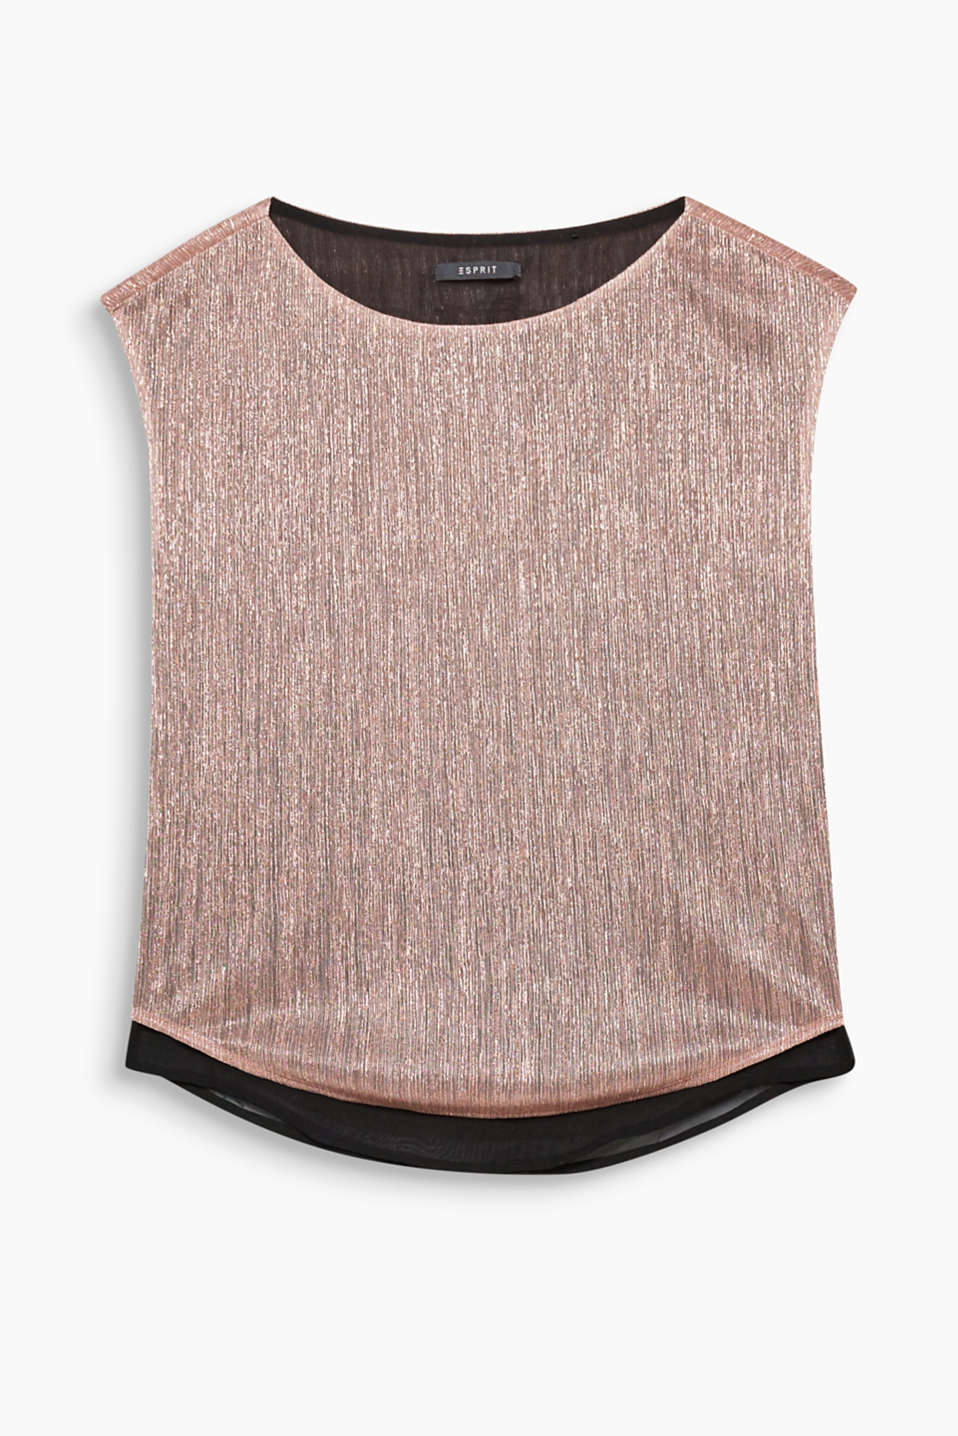 A glittering highlight! With its glittering metallic effect and flowing shape, this top exudes a party style.